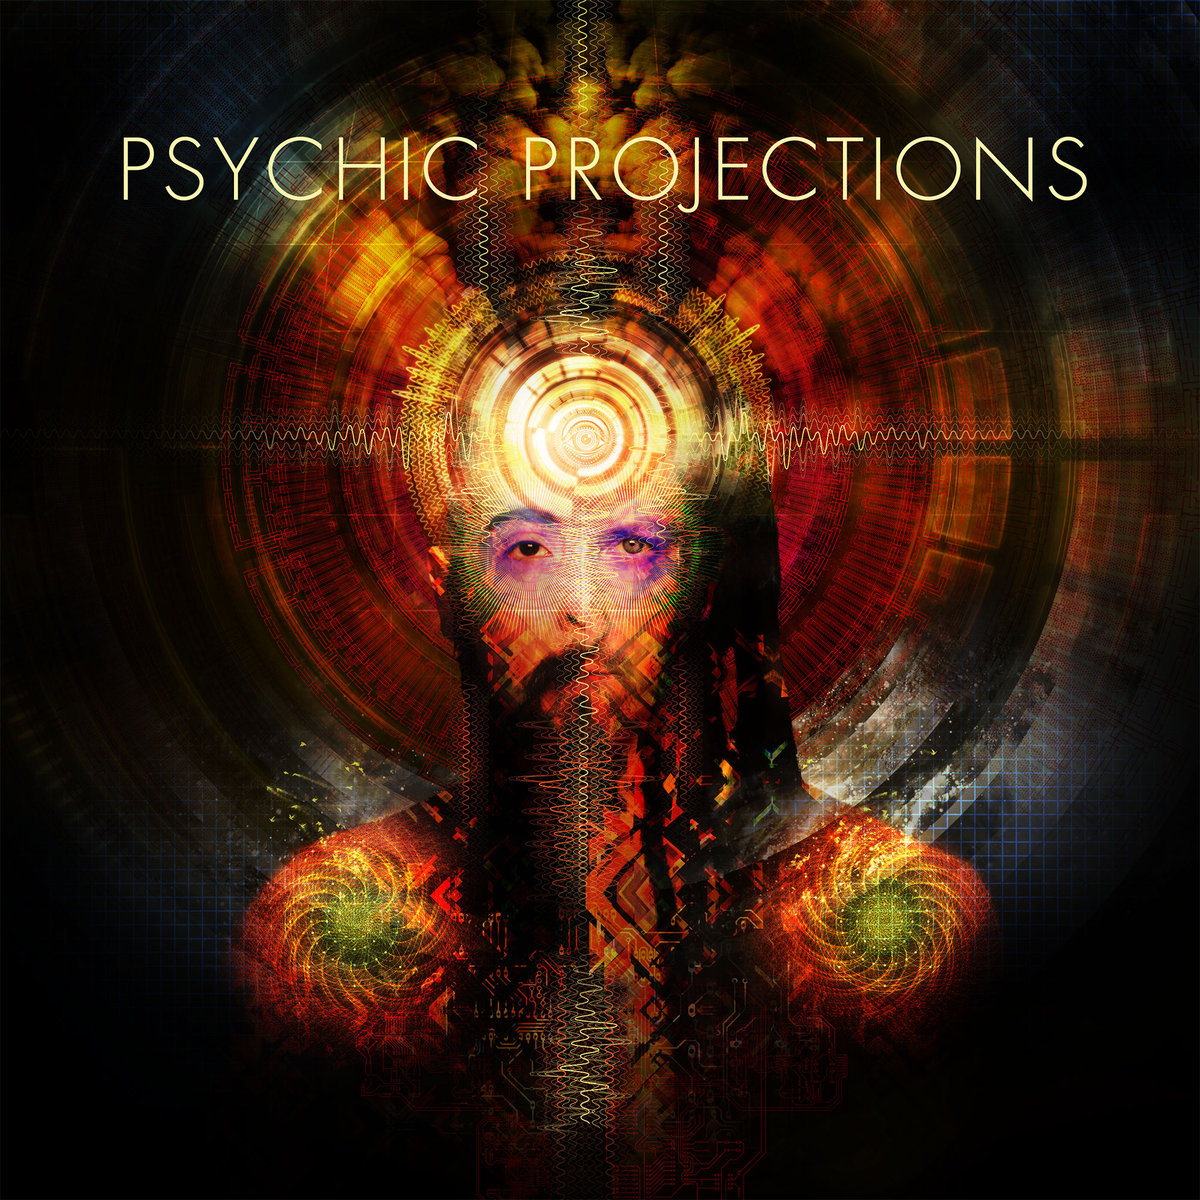 Zebbler Encanti Experience - Quetzalcoatl (Willy Whompa Remix) @ 'Psychic Projections' album (moombahton, trap)